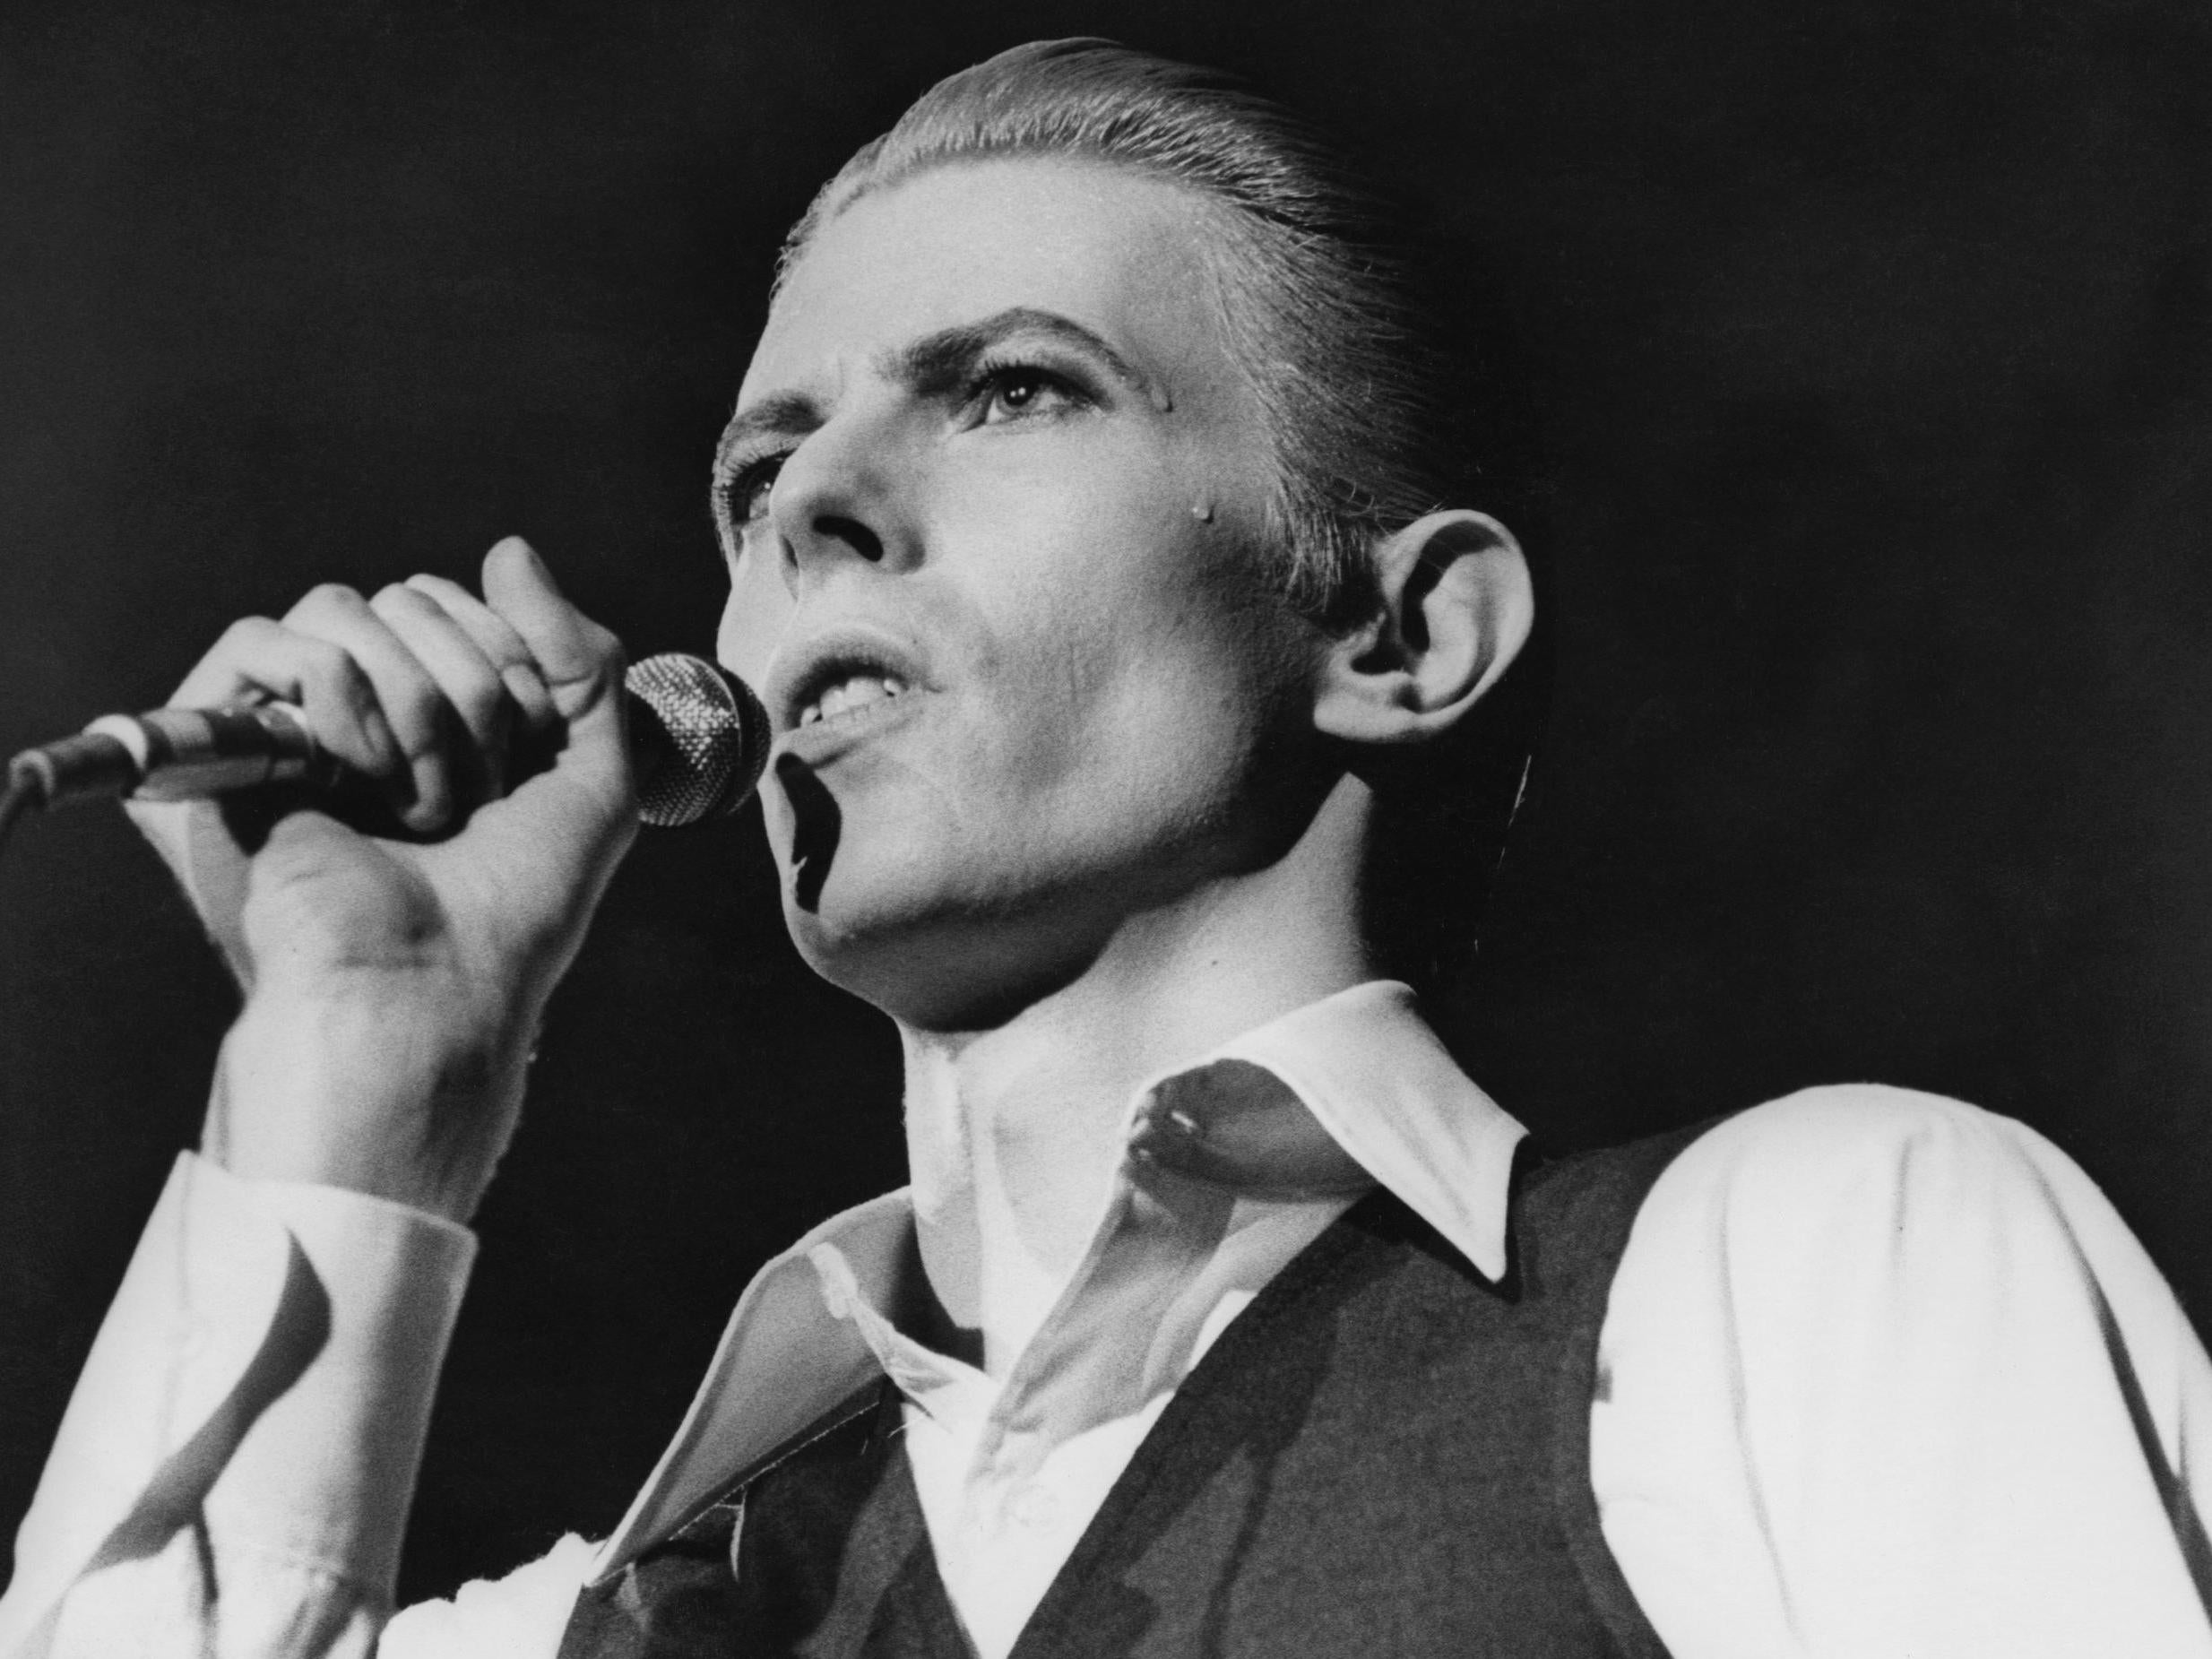 Cocaine, no sleep and deep soul: the story of David Bowie's Young Americans